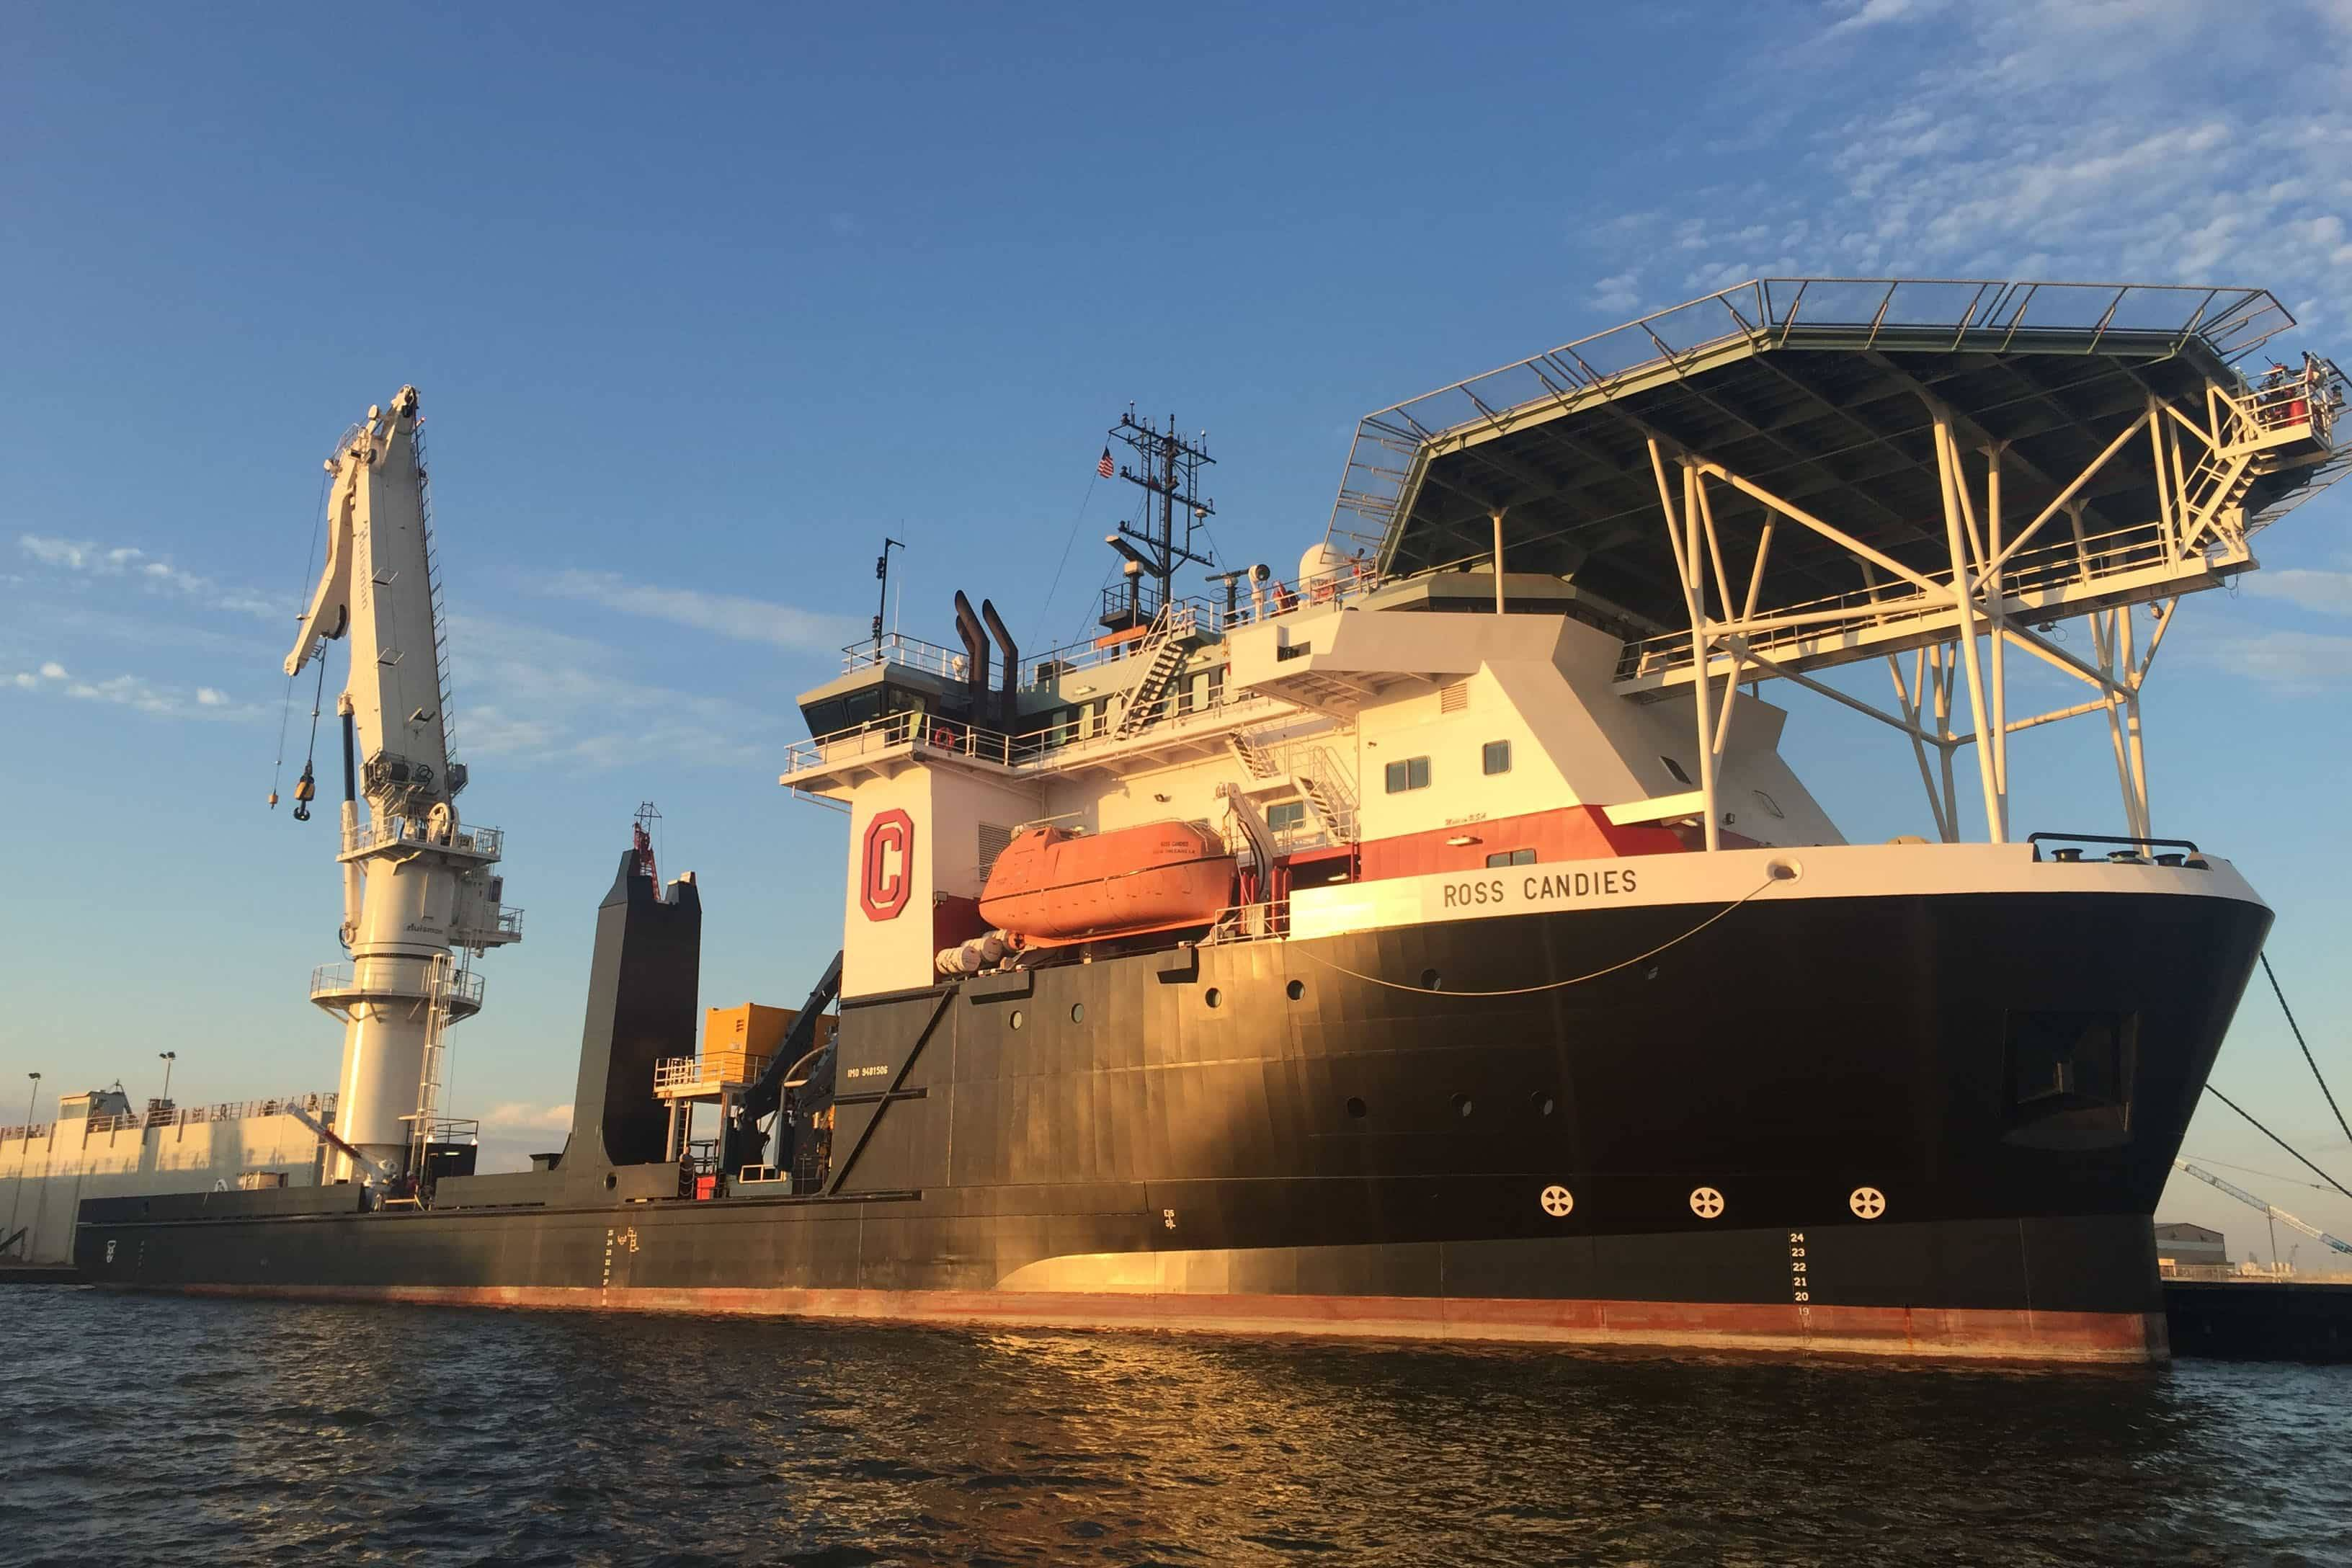 Canyon Charters Otto Candies Vessel